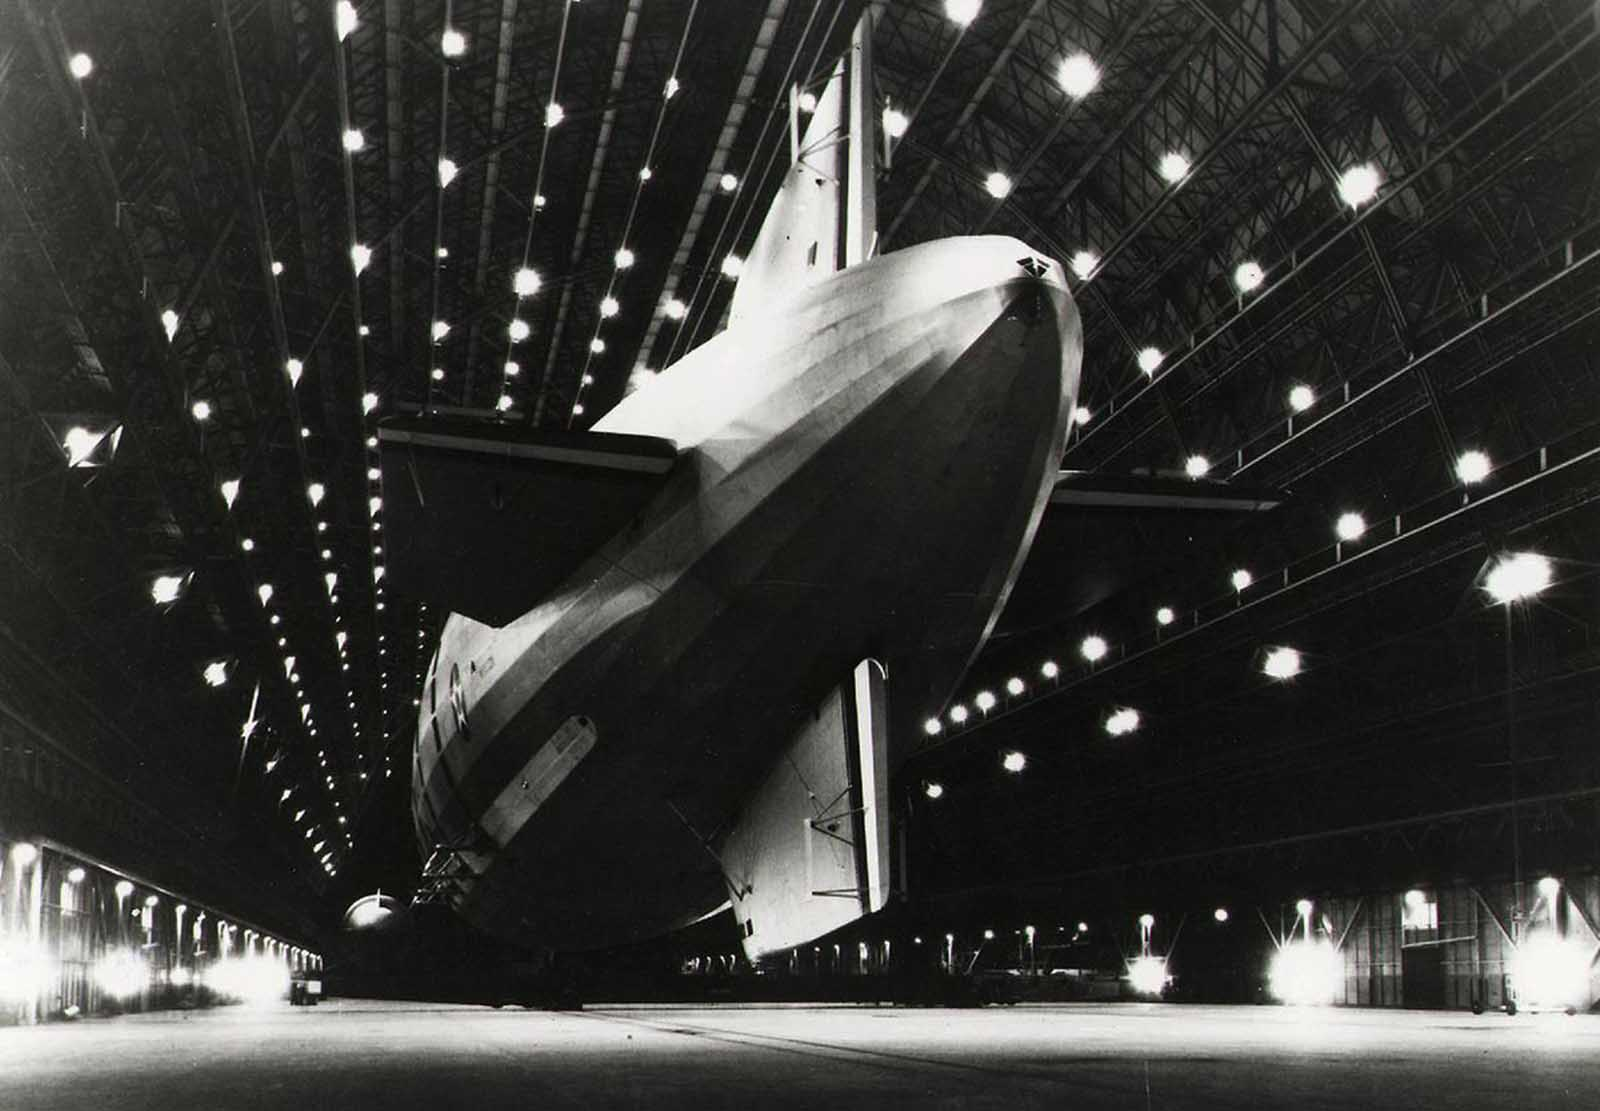 The airship USS Macon, moored at Hangar One at Moffett Federal Airfield near Mountain View, California.